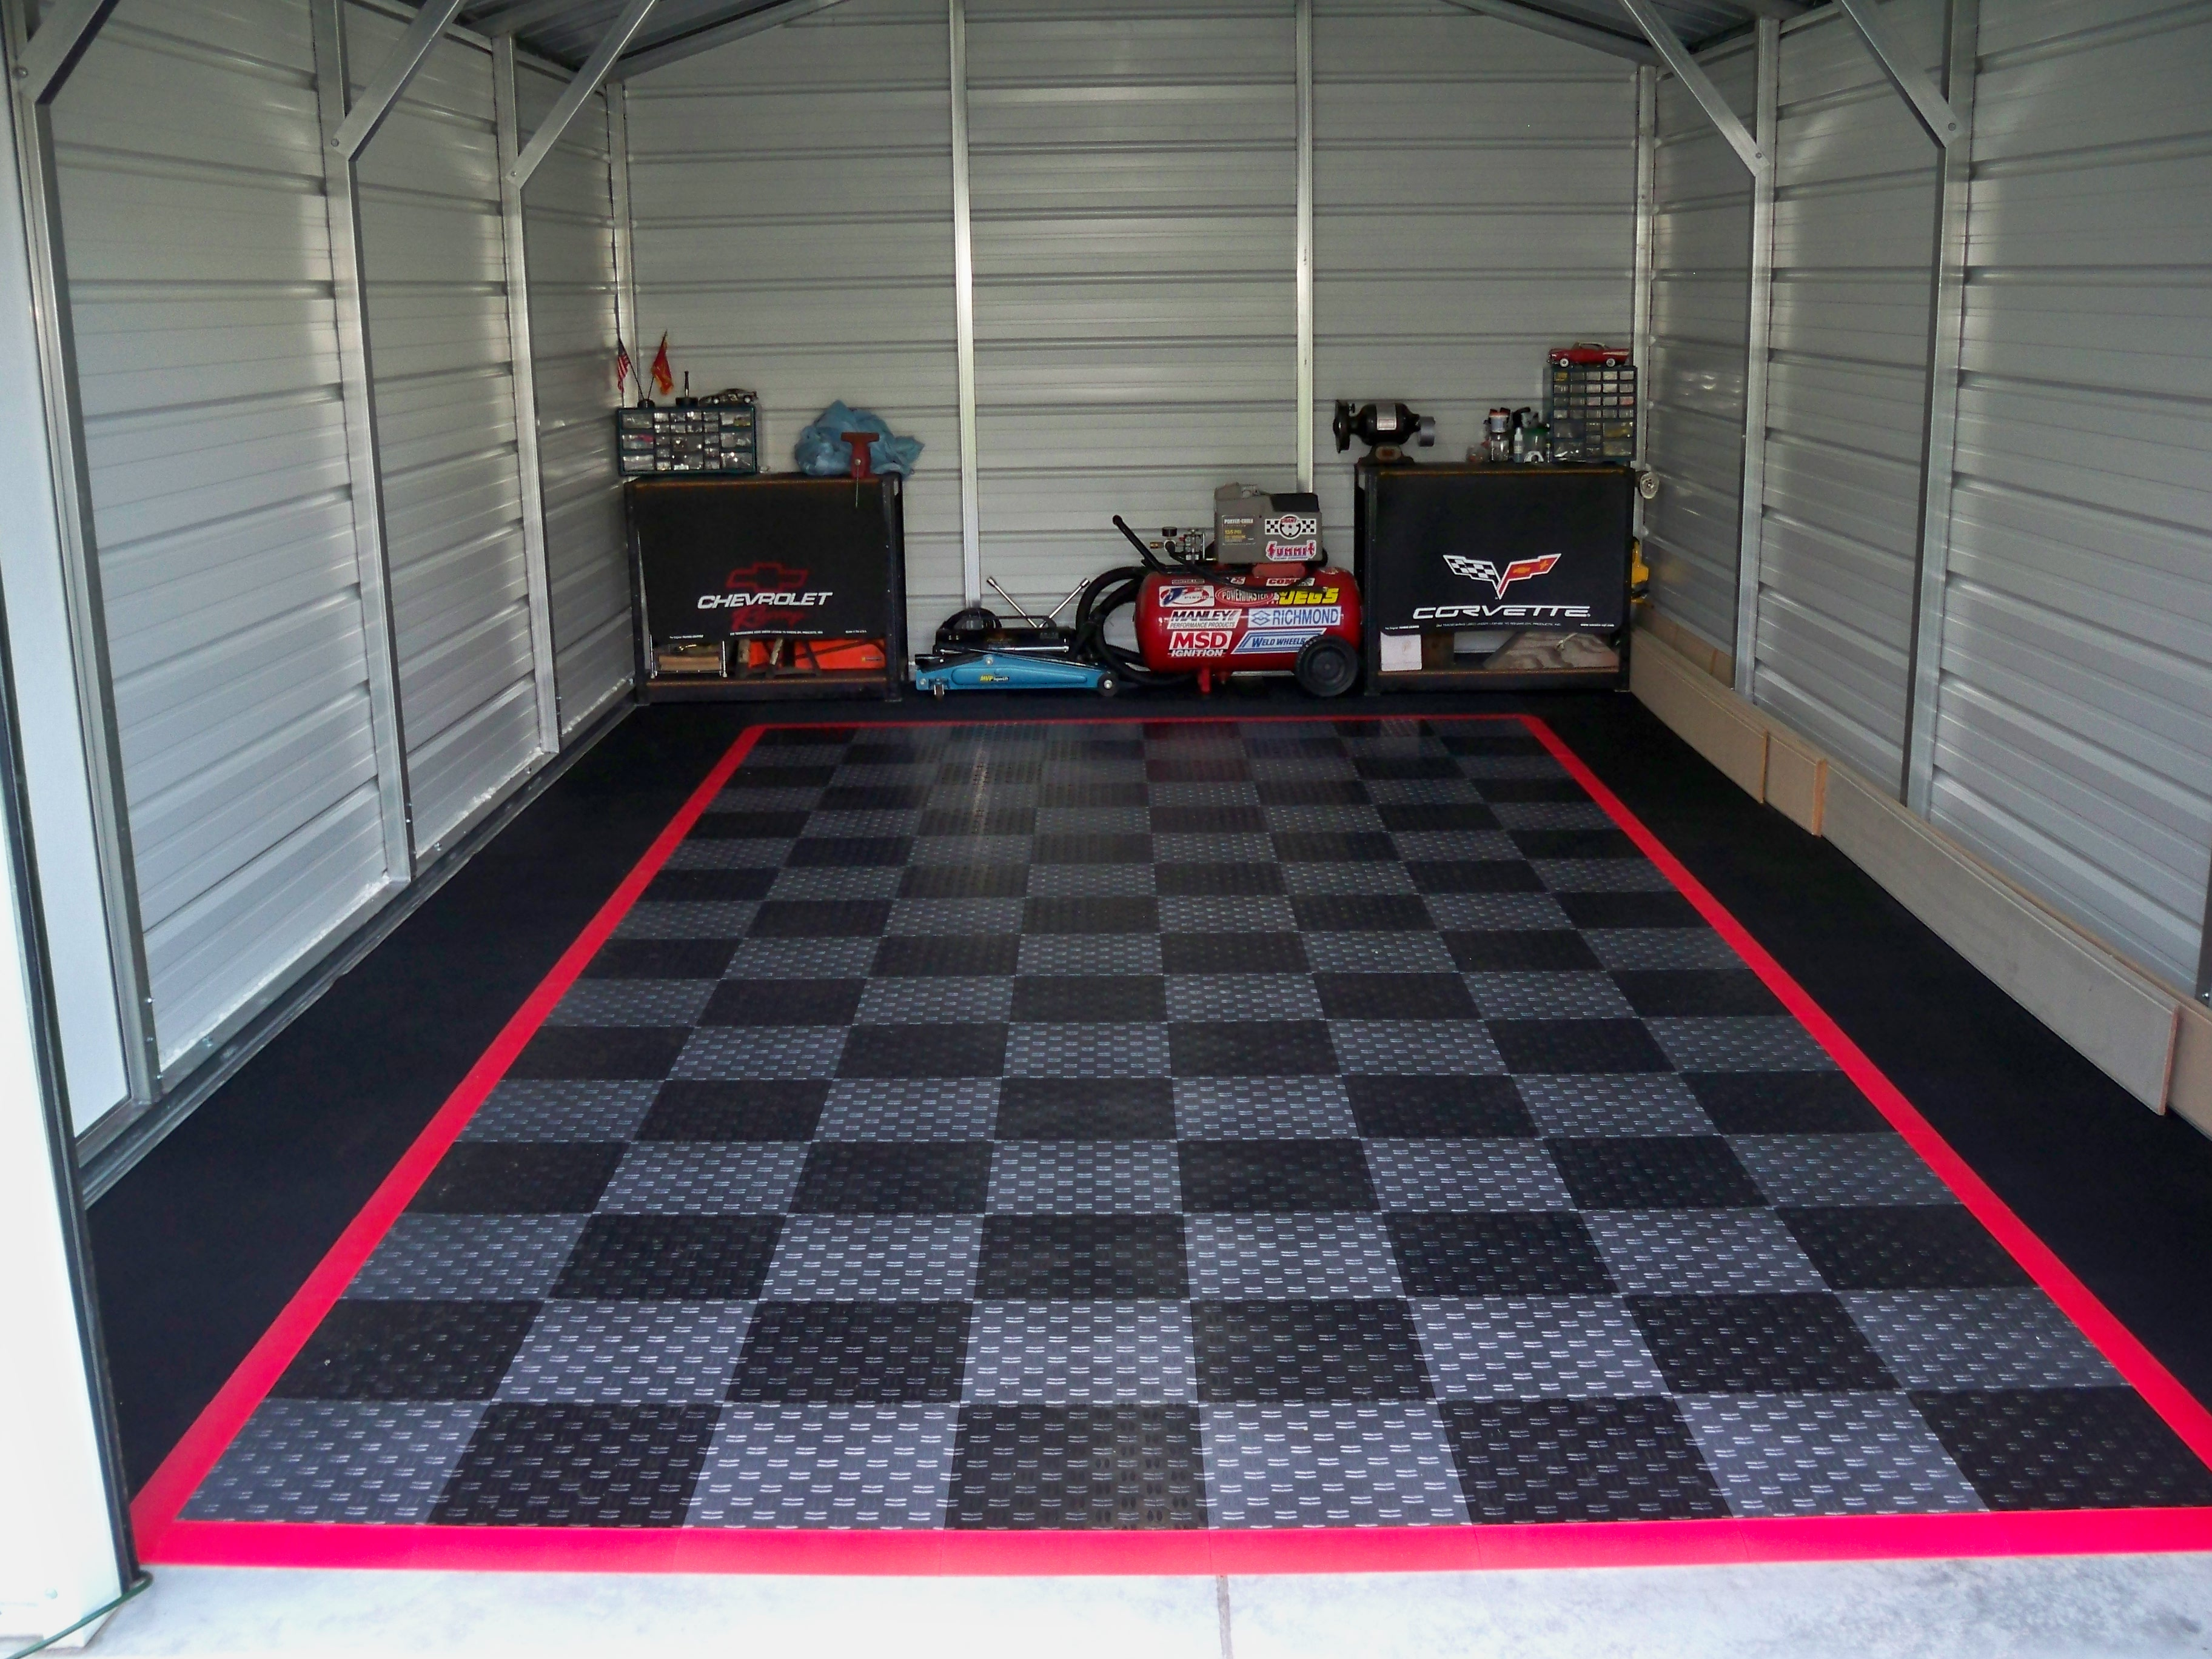 Finished my garage floor today for my 70 camaro name 002g views 841 size 159 mb dailygadgetfo Gallery